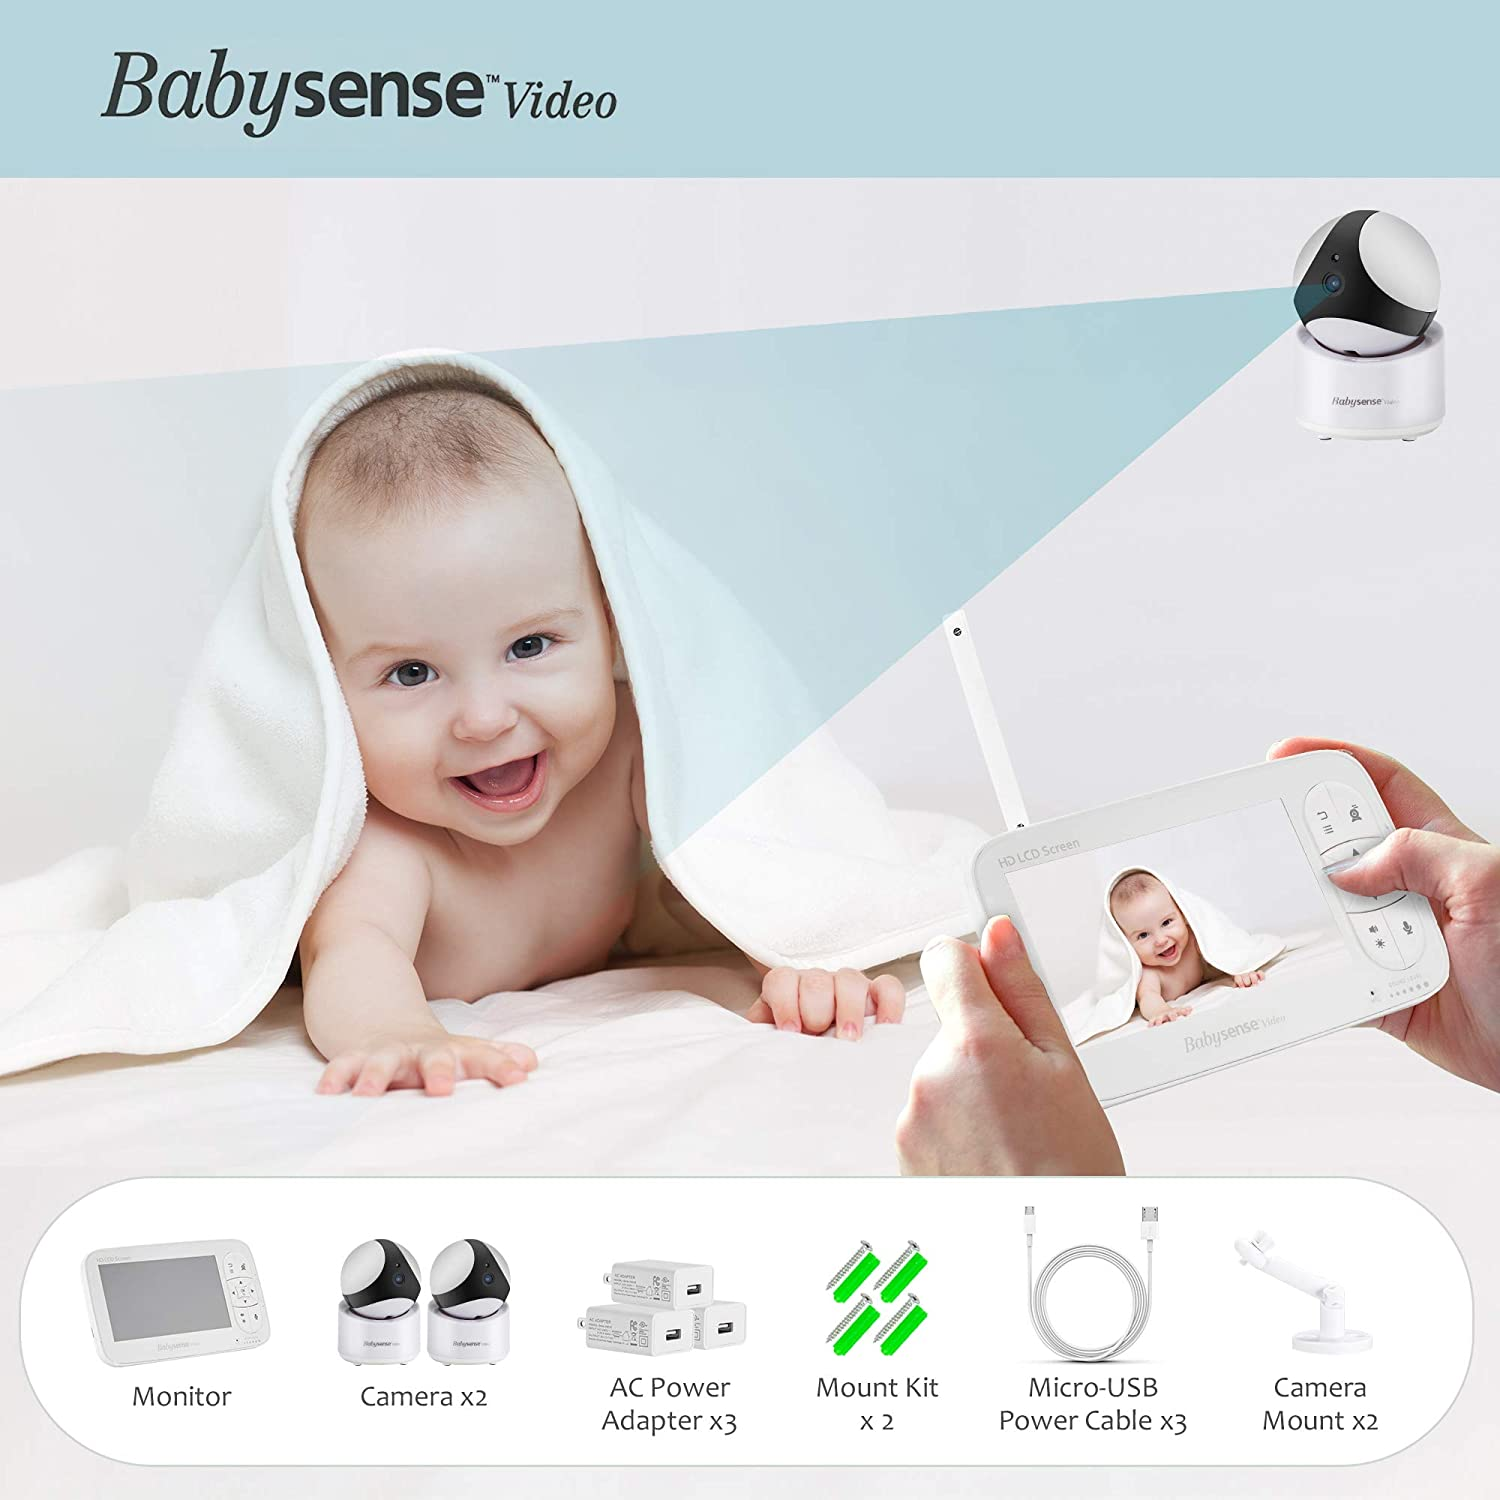 up to 4 Babysense HD 720P Video Baby Monitor with Large 5 Inch Display and Two PTZ Cameras Zoom Multi HD Cameras Two Way Talk Back Audio Long Range Night Vision Remote Pan Zoom Tilt